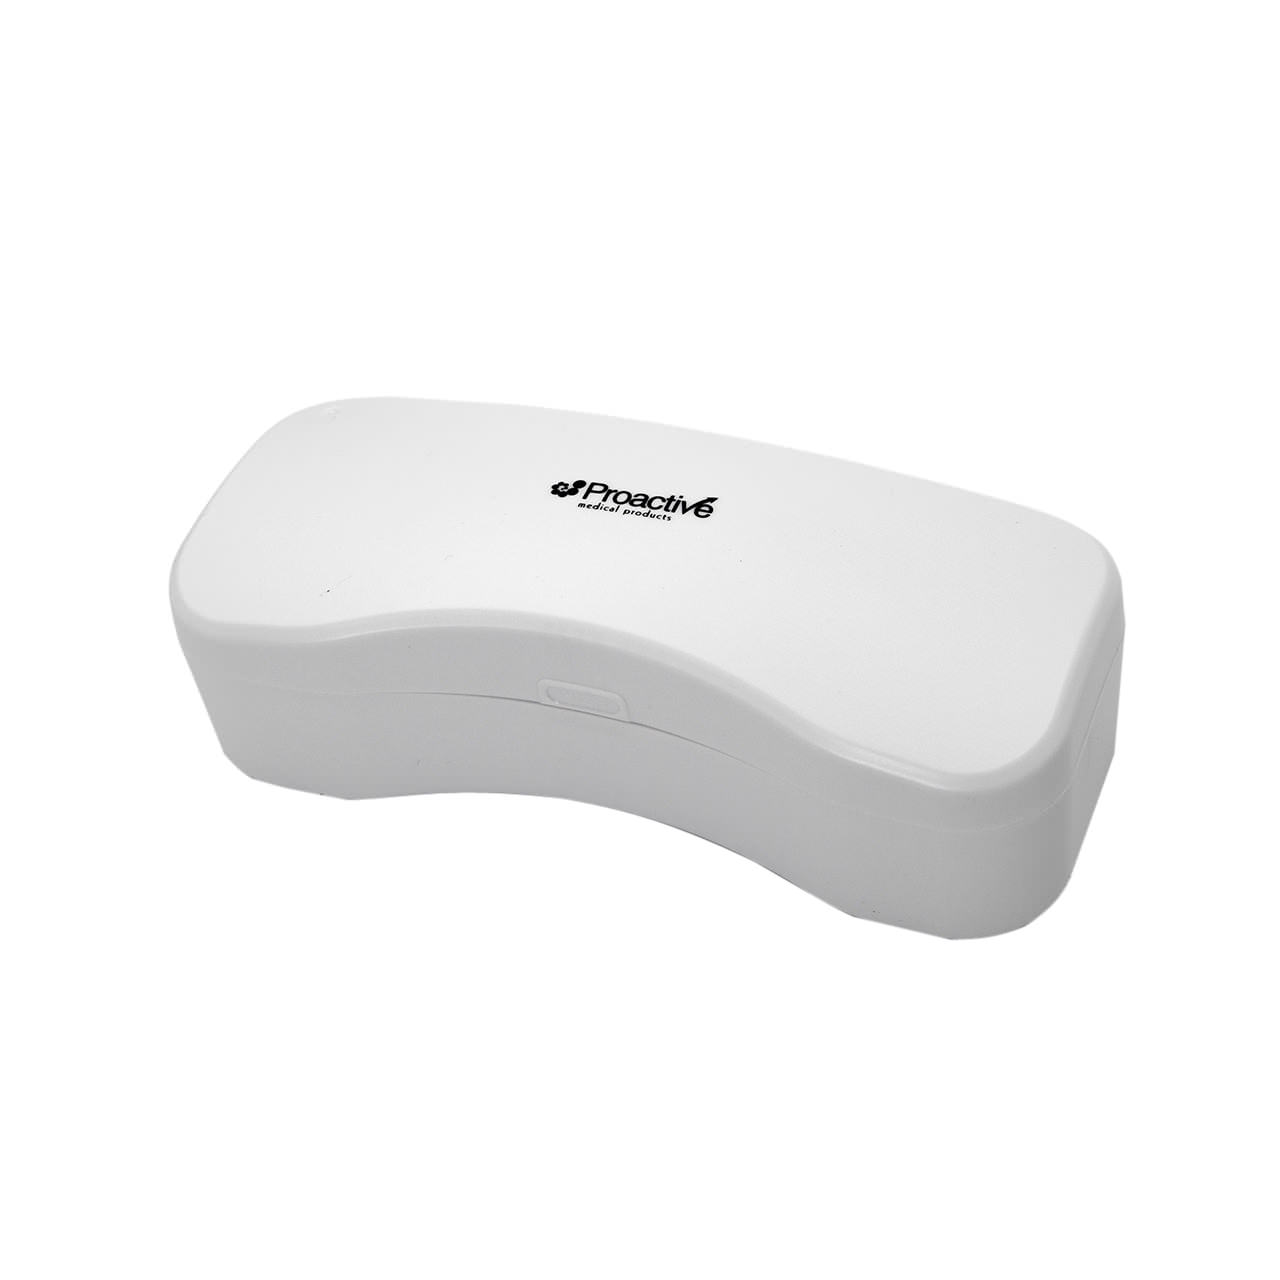 Protekt Pro-Temp Infrared Non-Contact Thermometer case